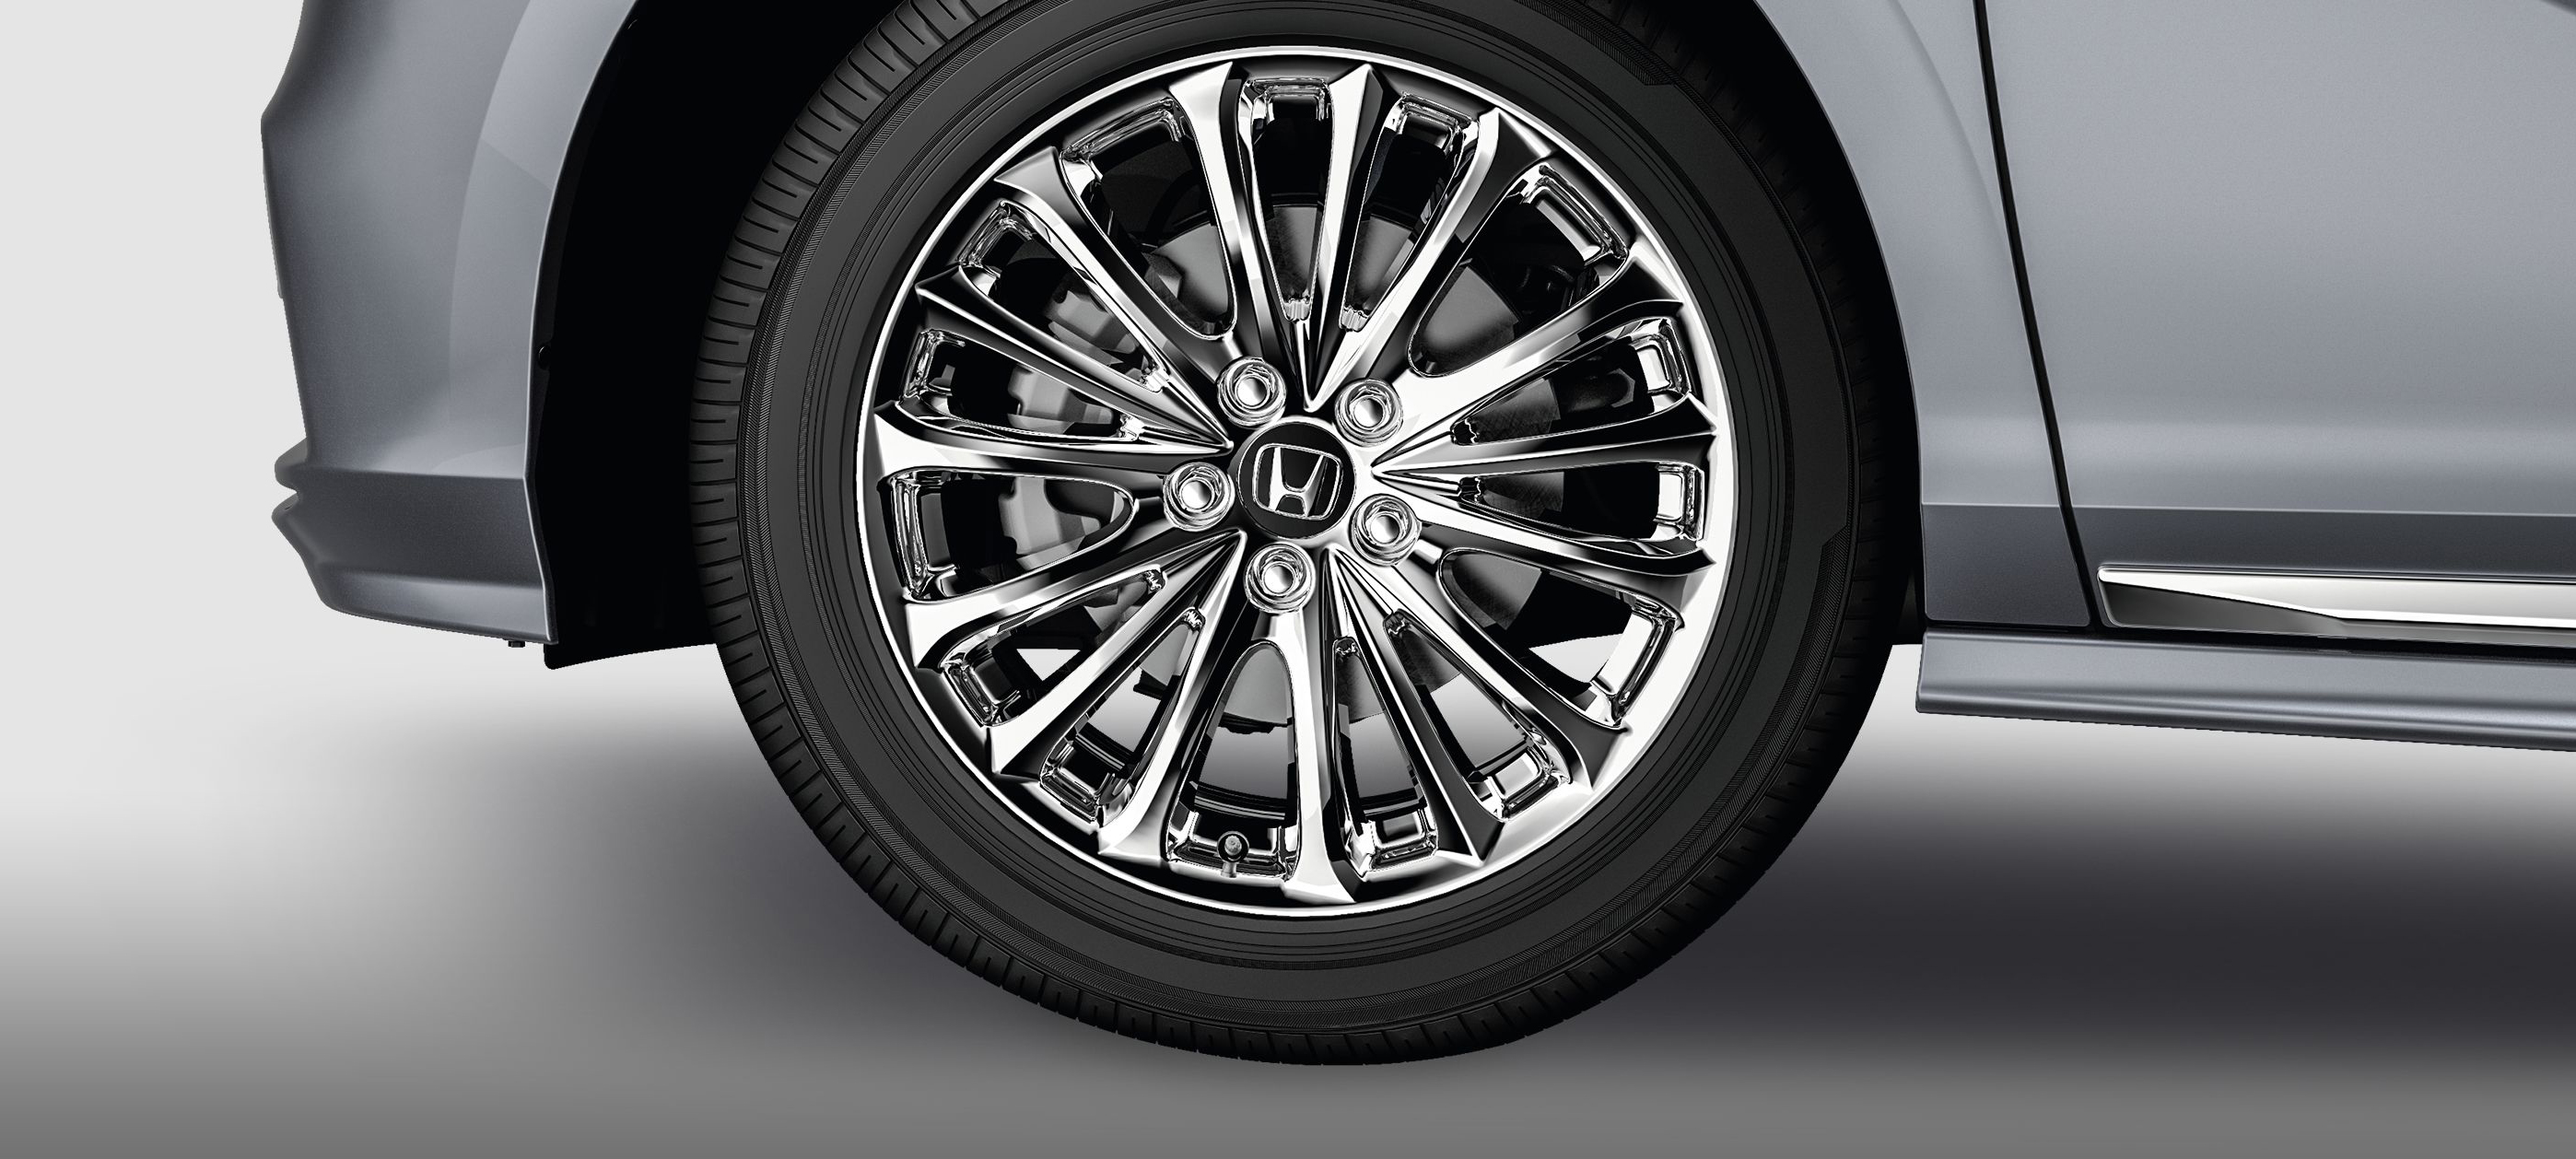 19-in Chrome Alloy Wheels